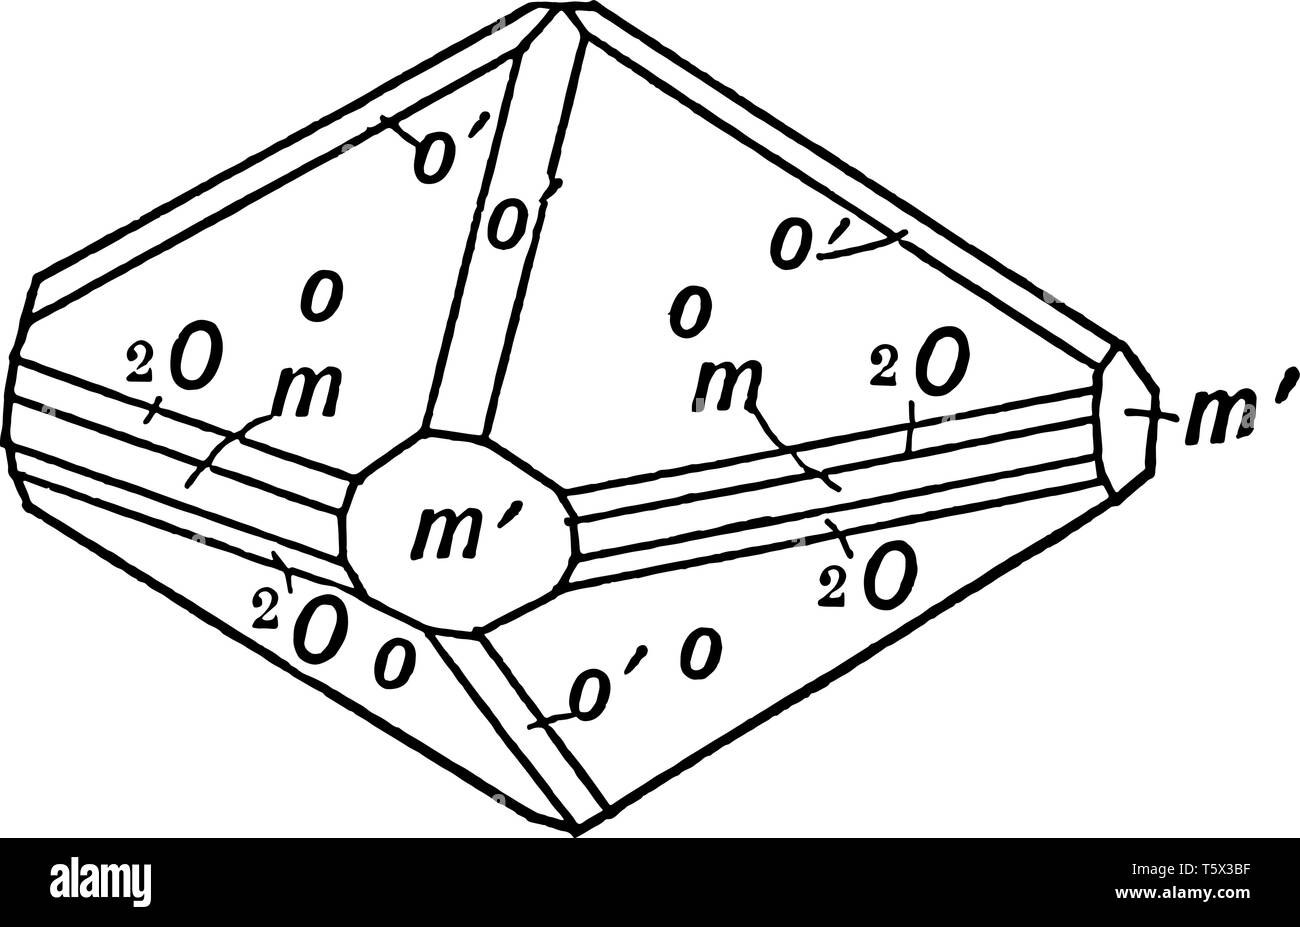 this diagram represents boron vintage line drawing or engraving  illustration